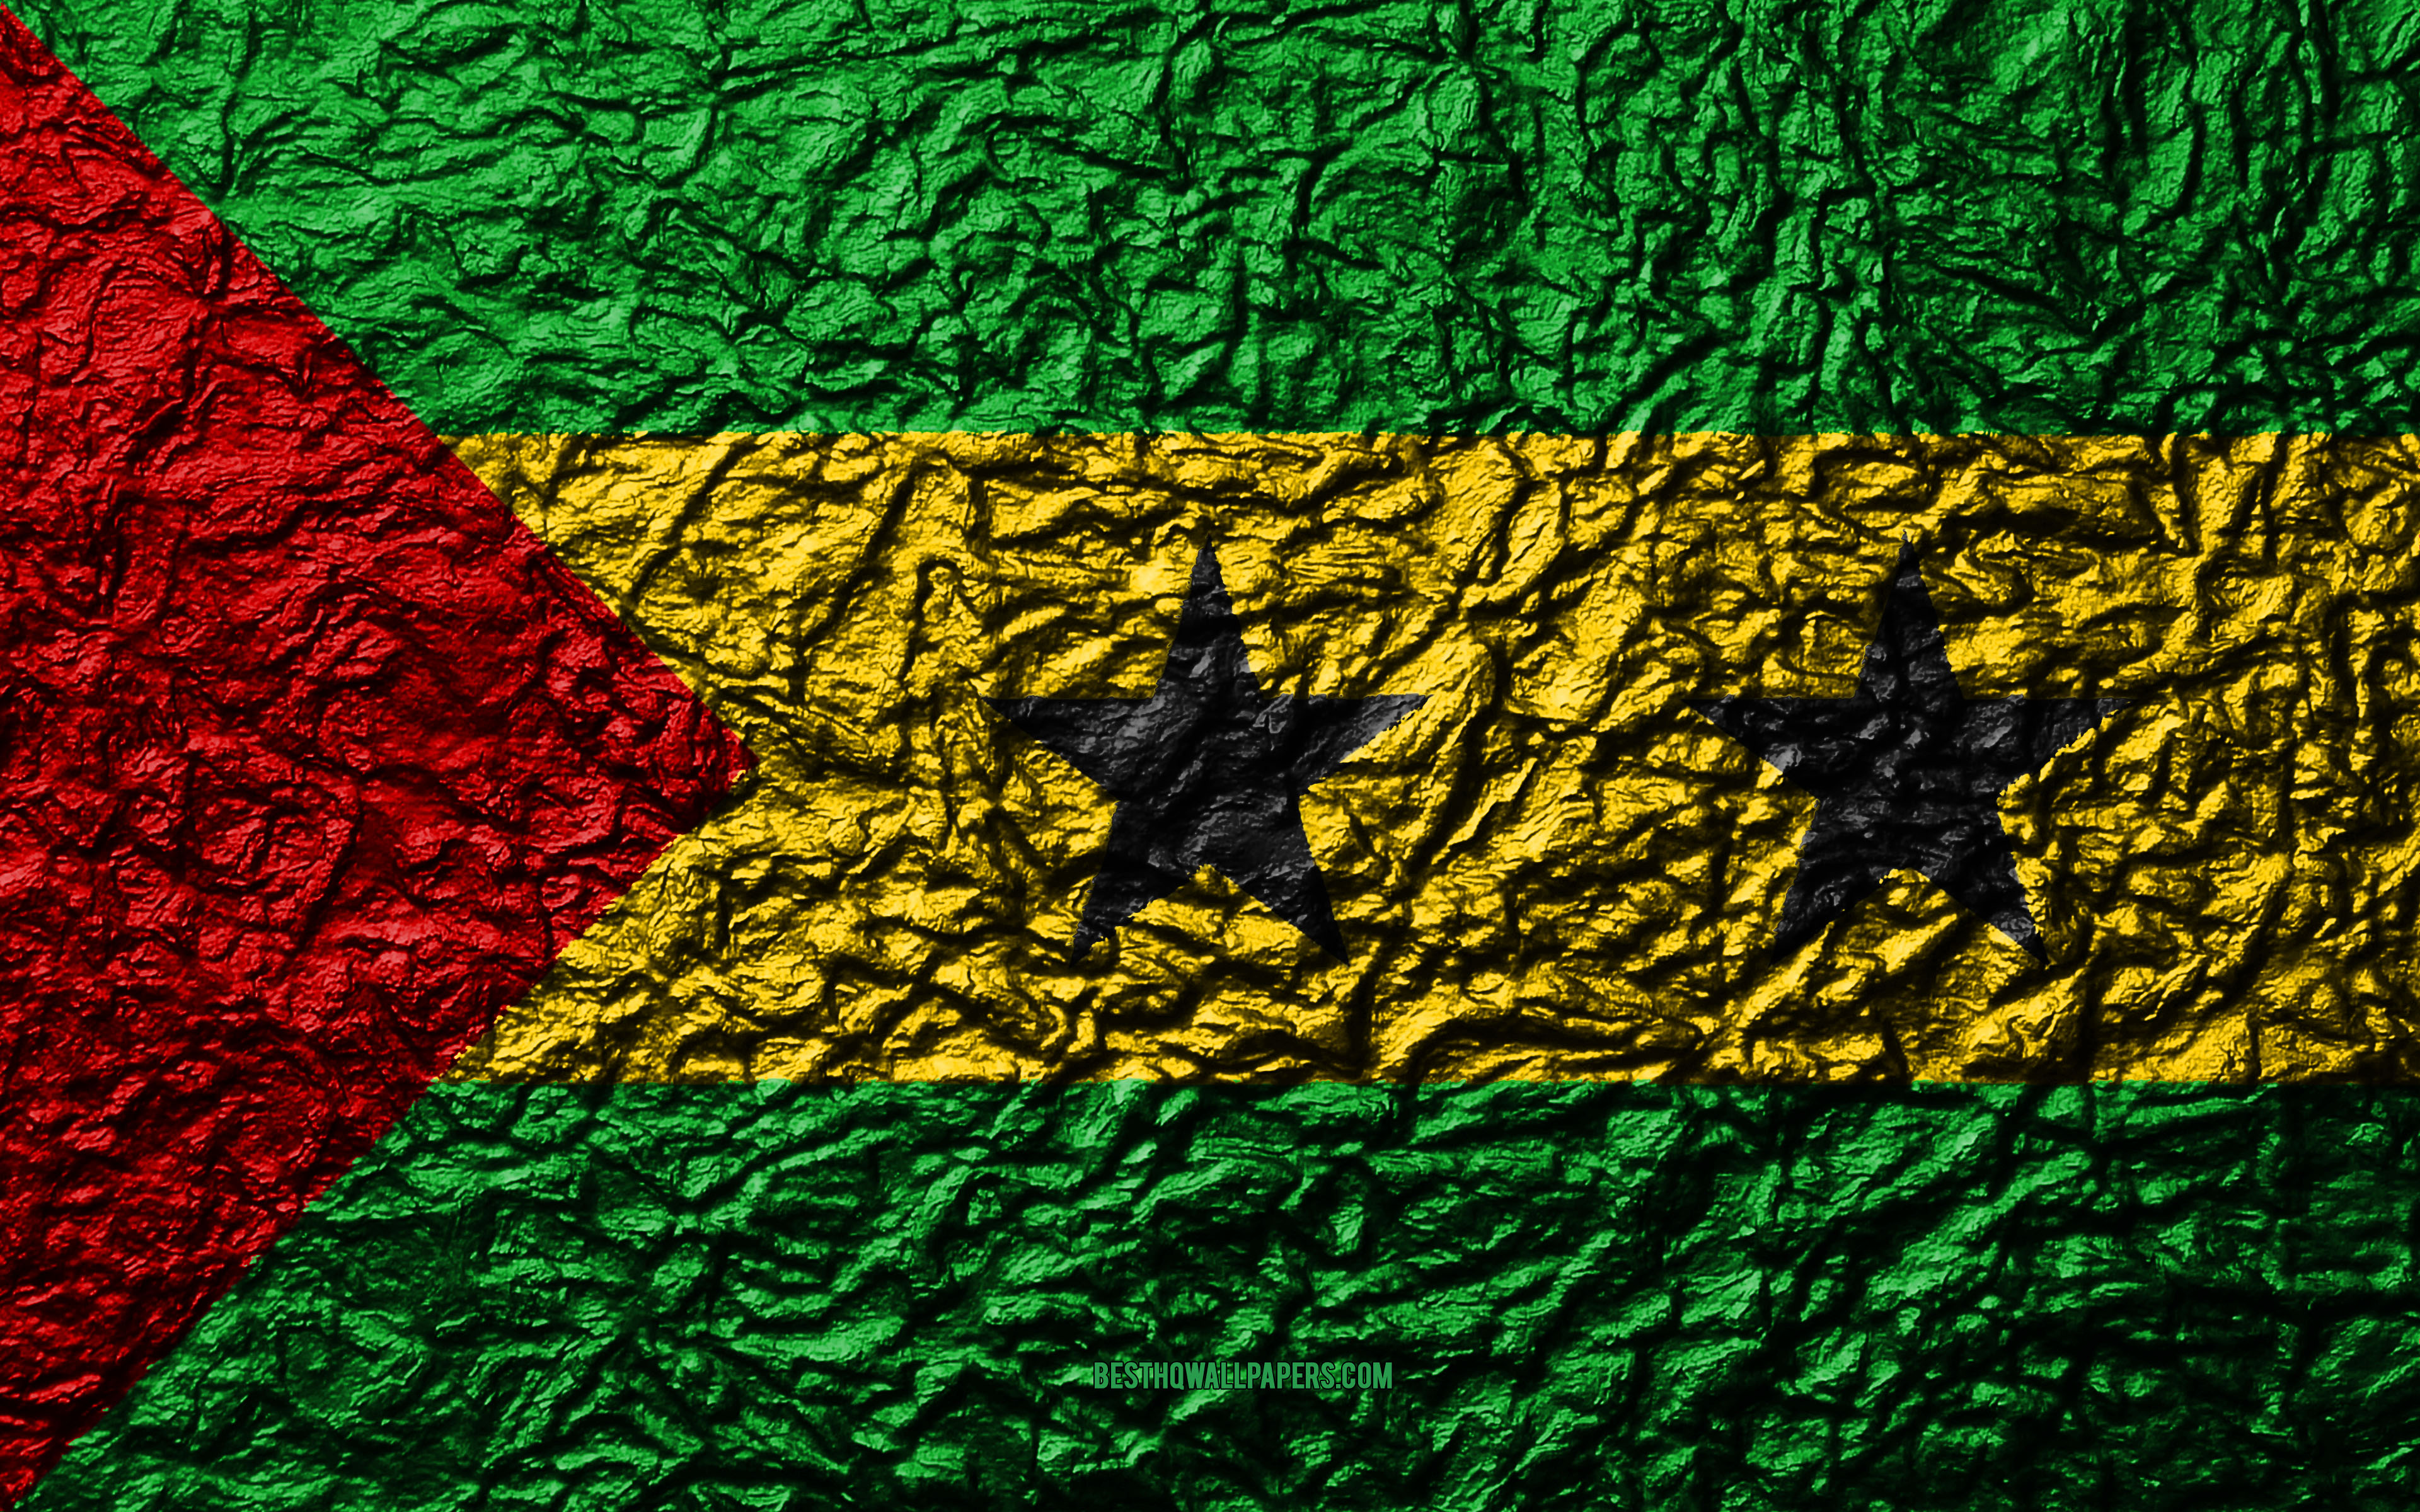 Download wallpapers Flag of Sao Tome and Principe 4k stone 3840x2400